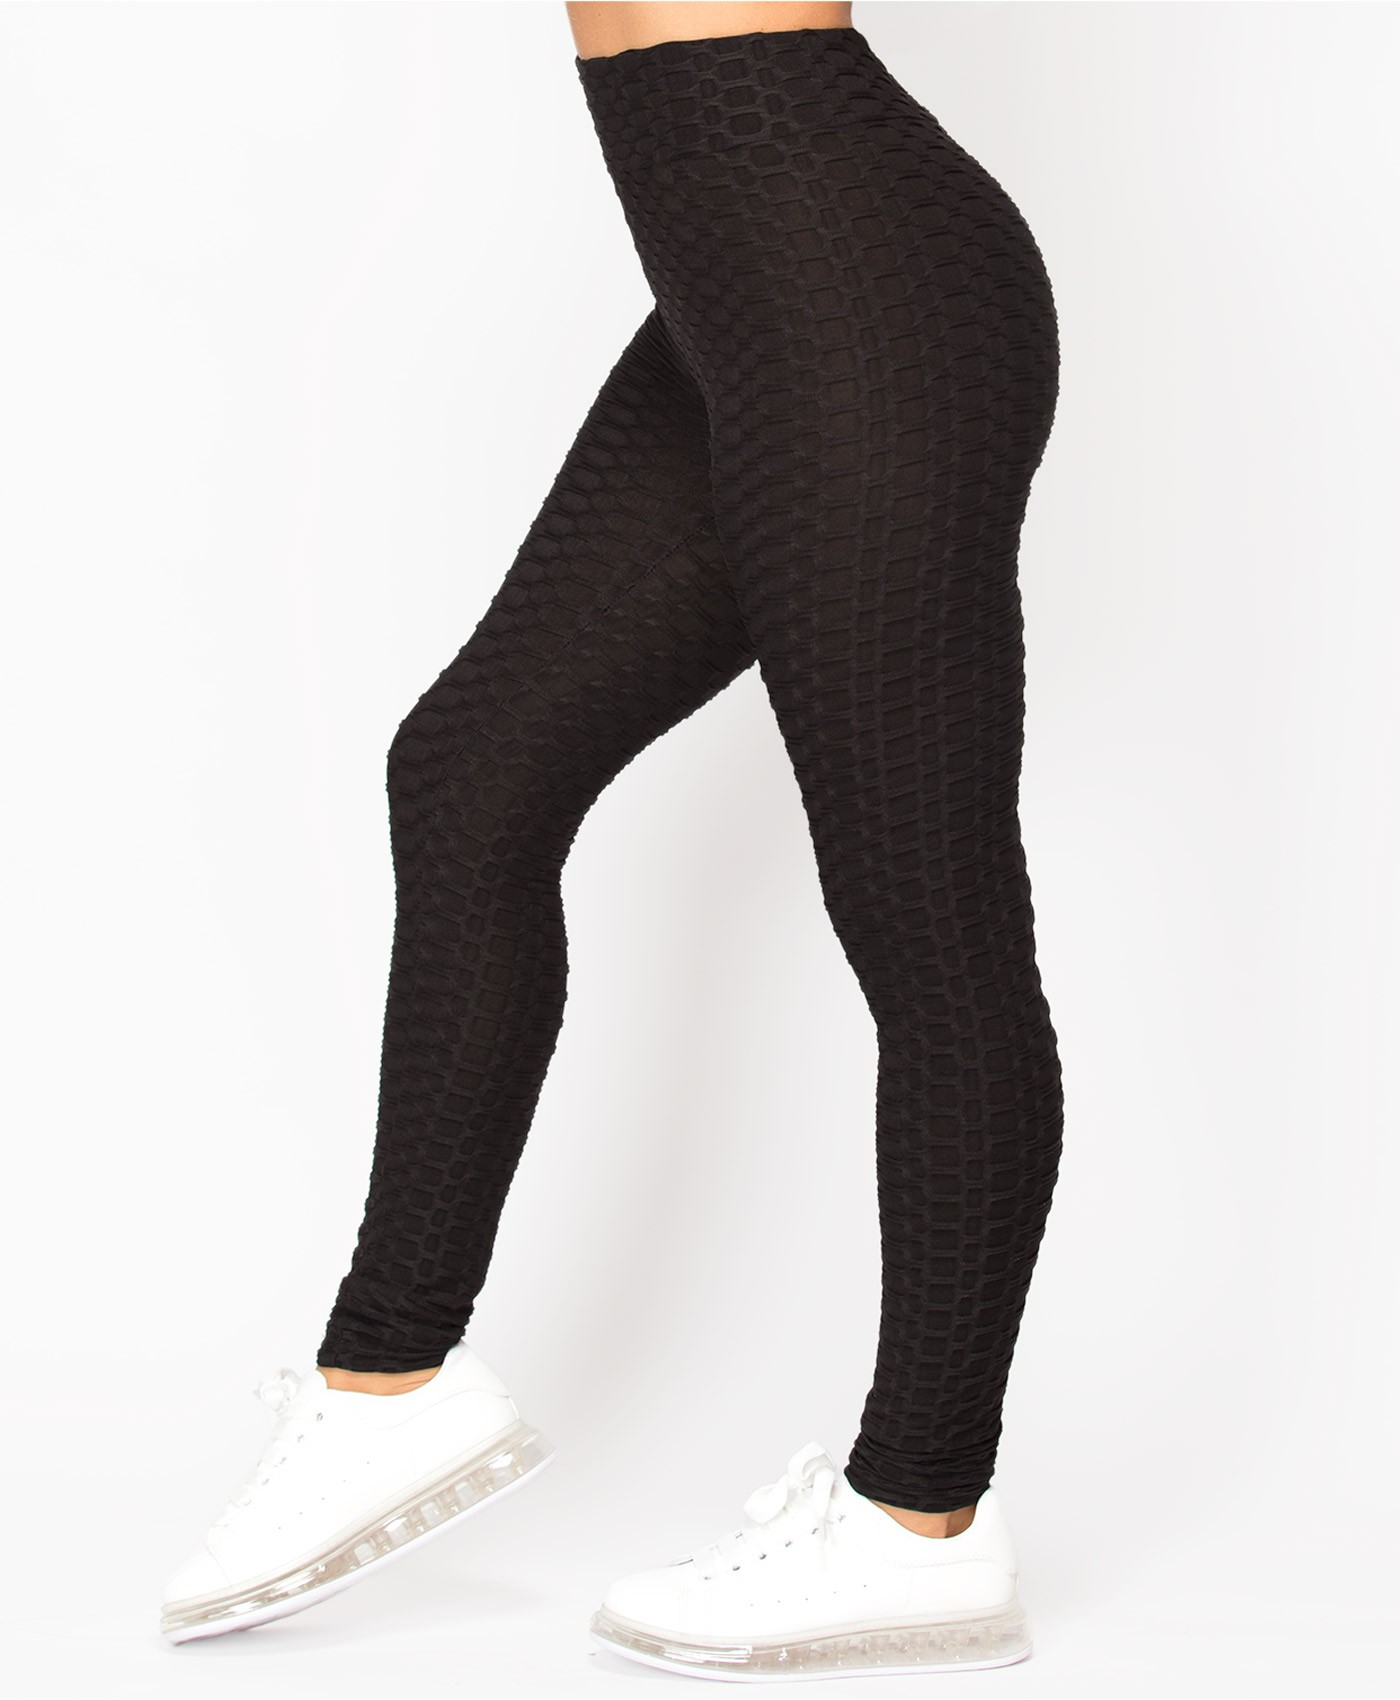 Waffle Textured Active Wear Stretch Leggings